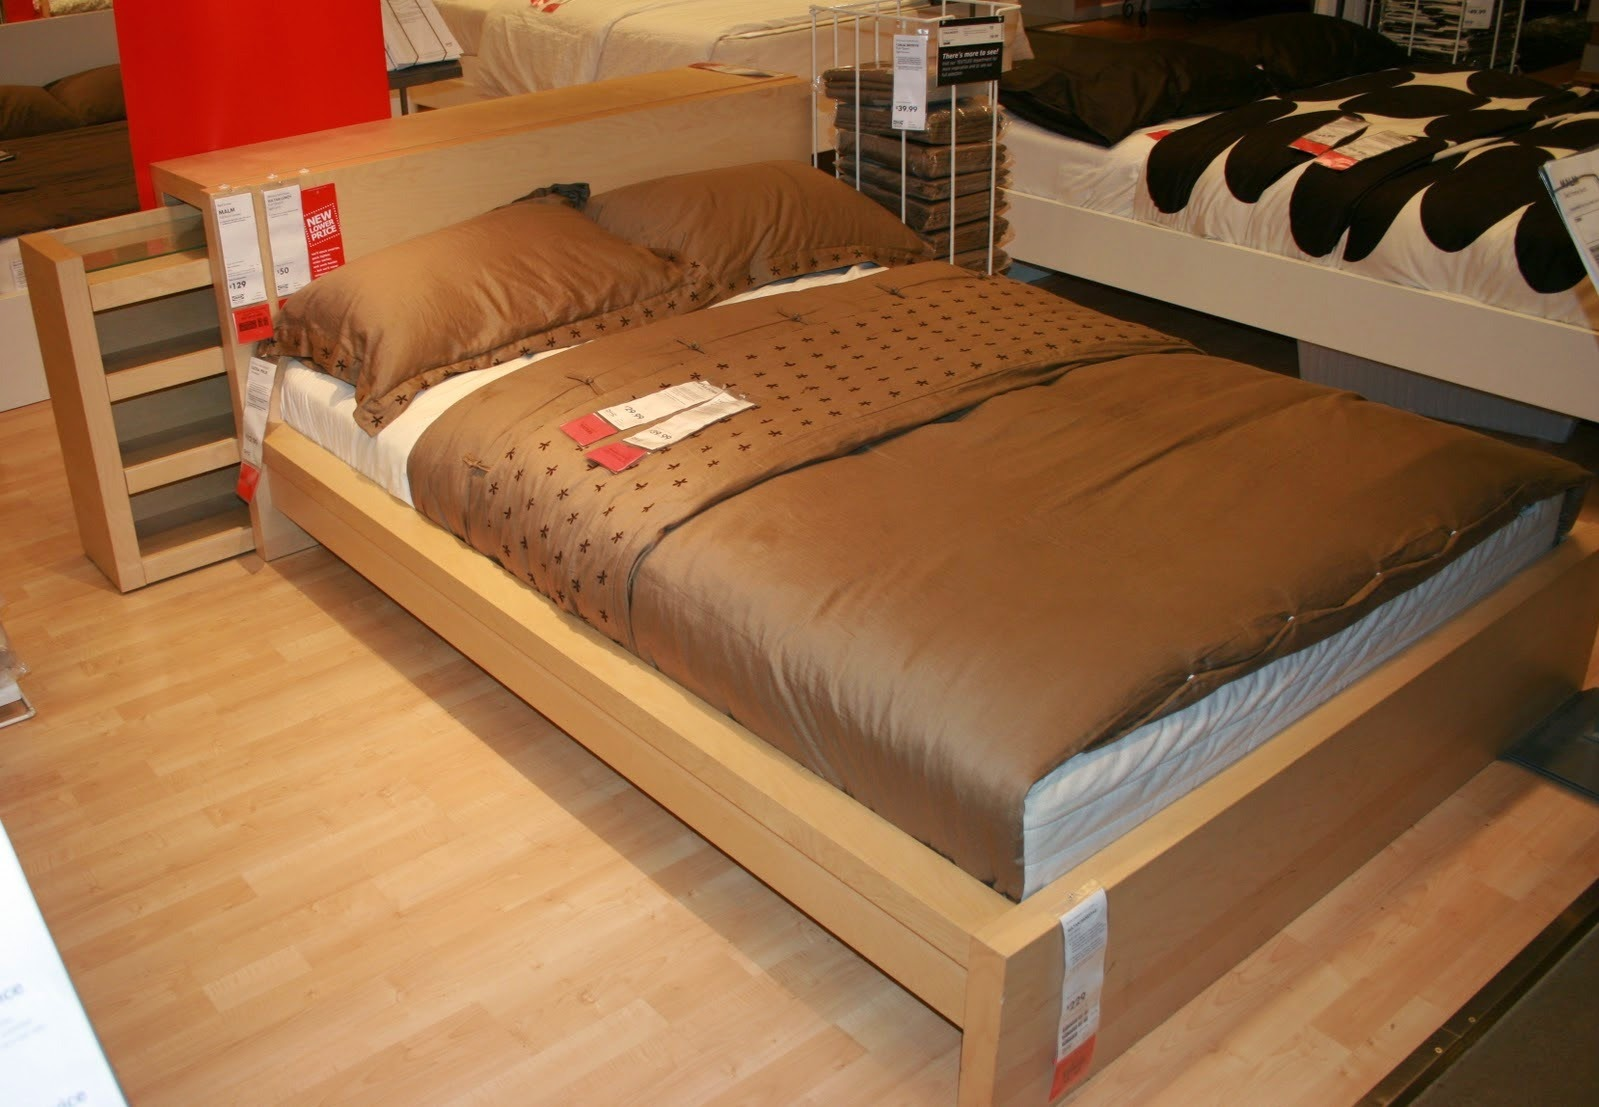 Ikea Malm Bett Kopfteil Backyard Landscaping: Ikea Malm Bed Headboard Storage